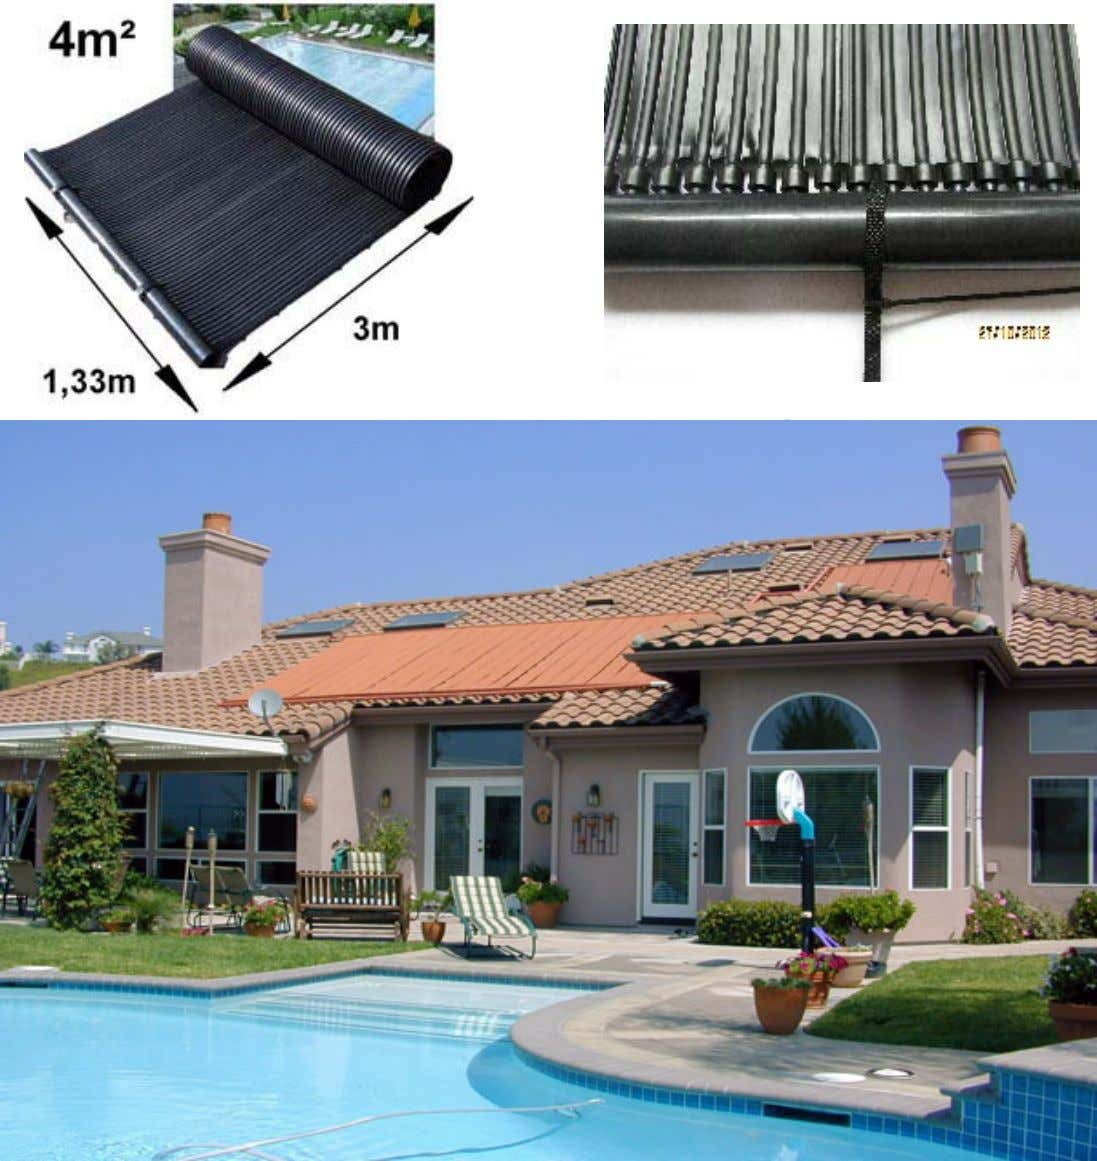 Solar Swimming Pool Heating System Khalid Hazil Al- Harbi Trading Establishment P.O. Box 391299 Riyadh 11365